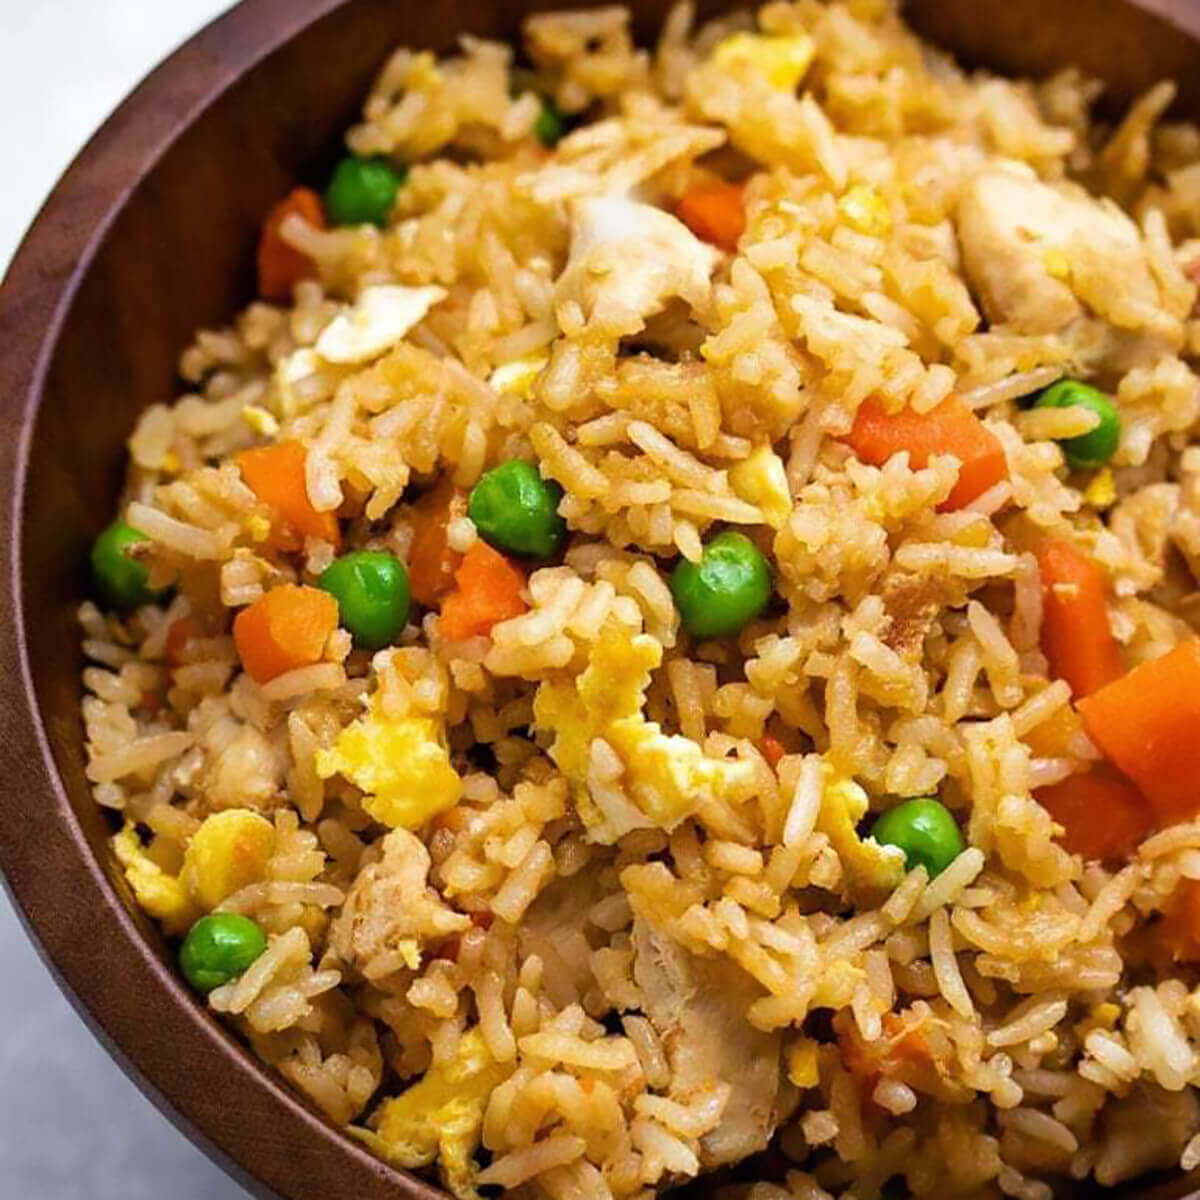 One of my favorite easy instant pot meals, chicken fried rice